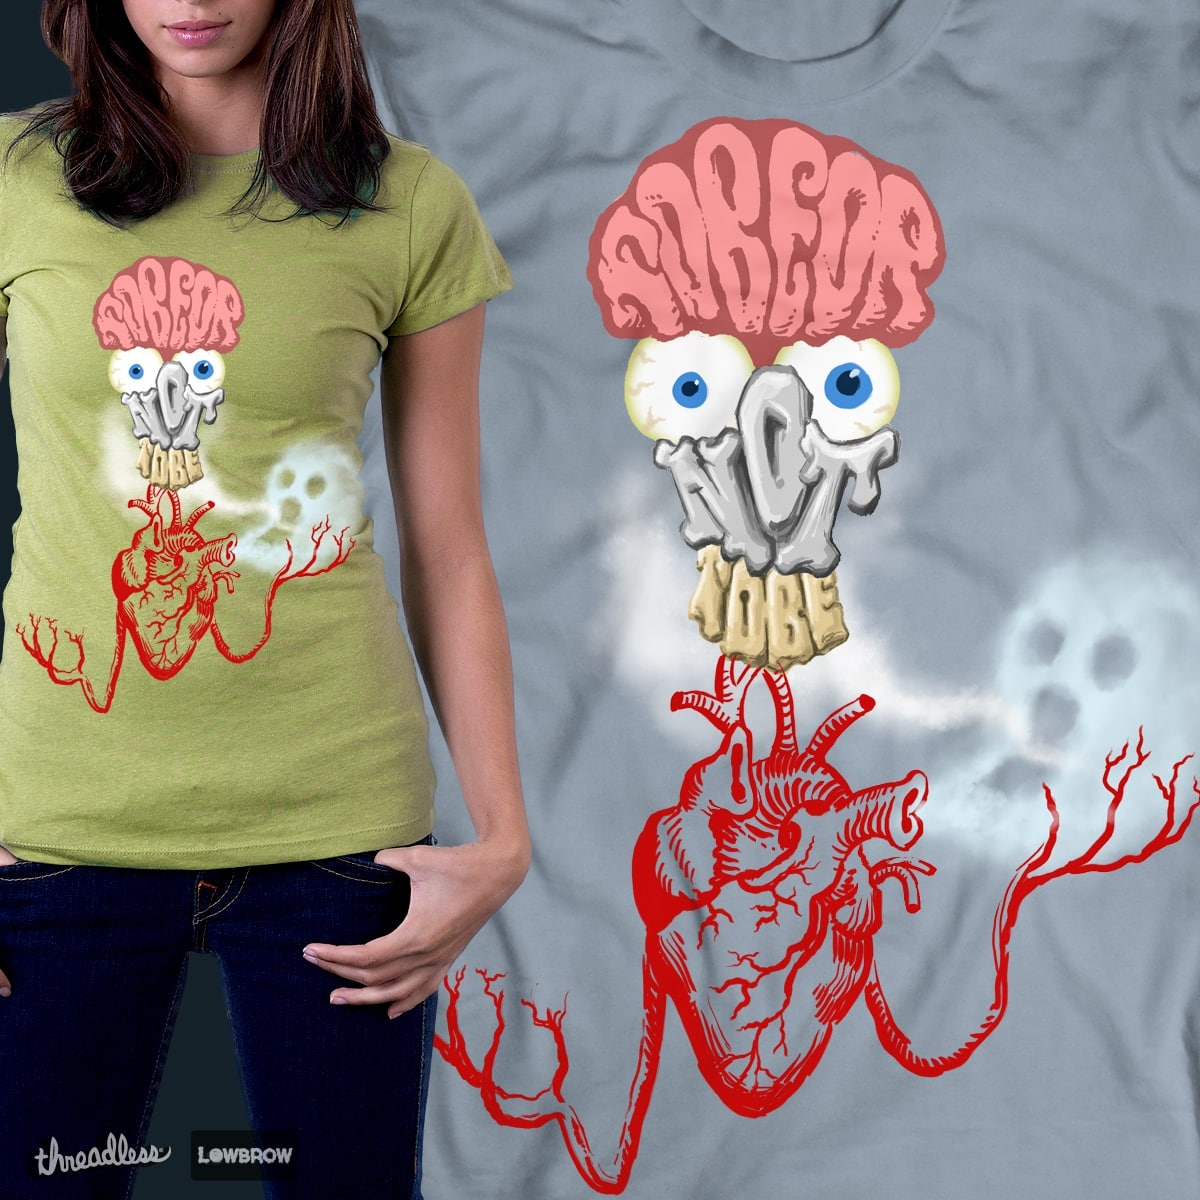 To be or not to be by ugurbs on Threadless